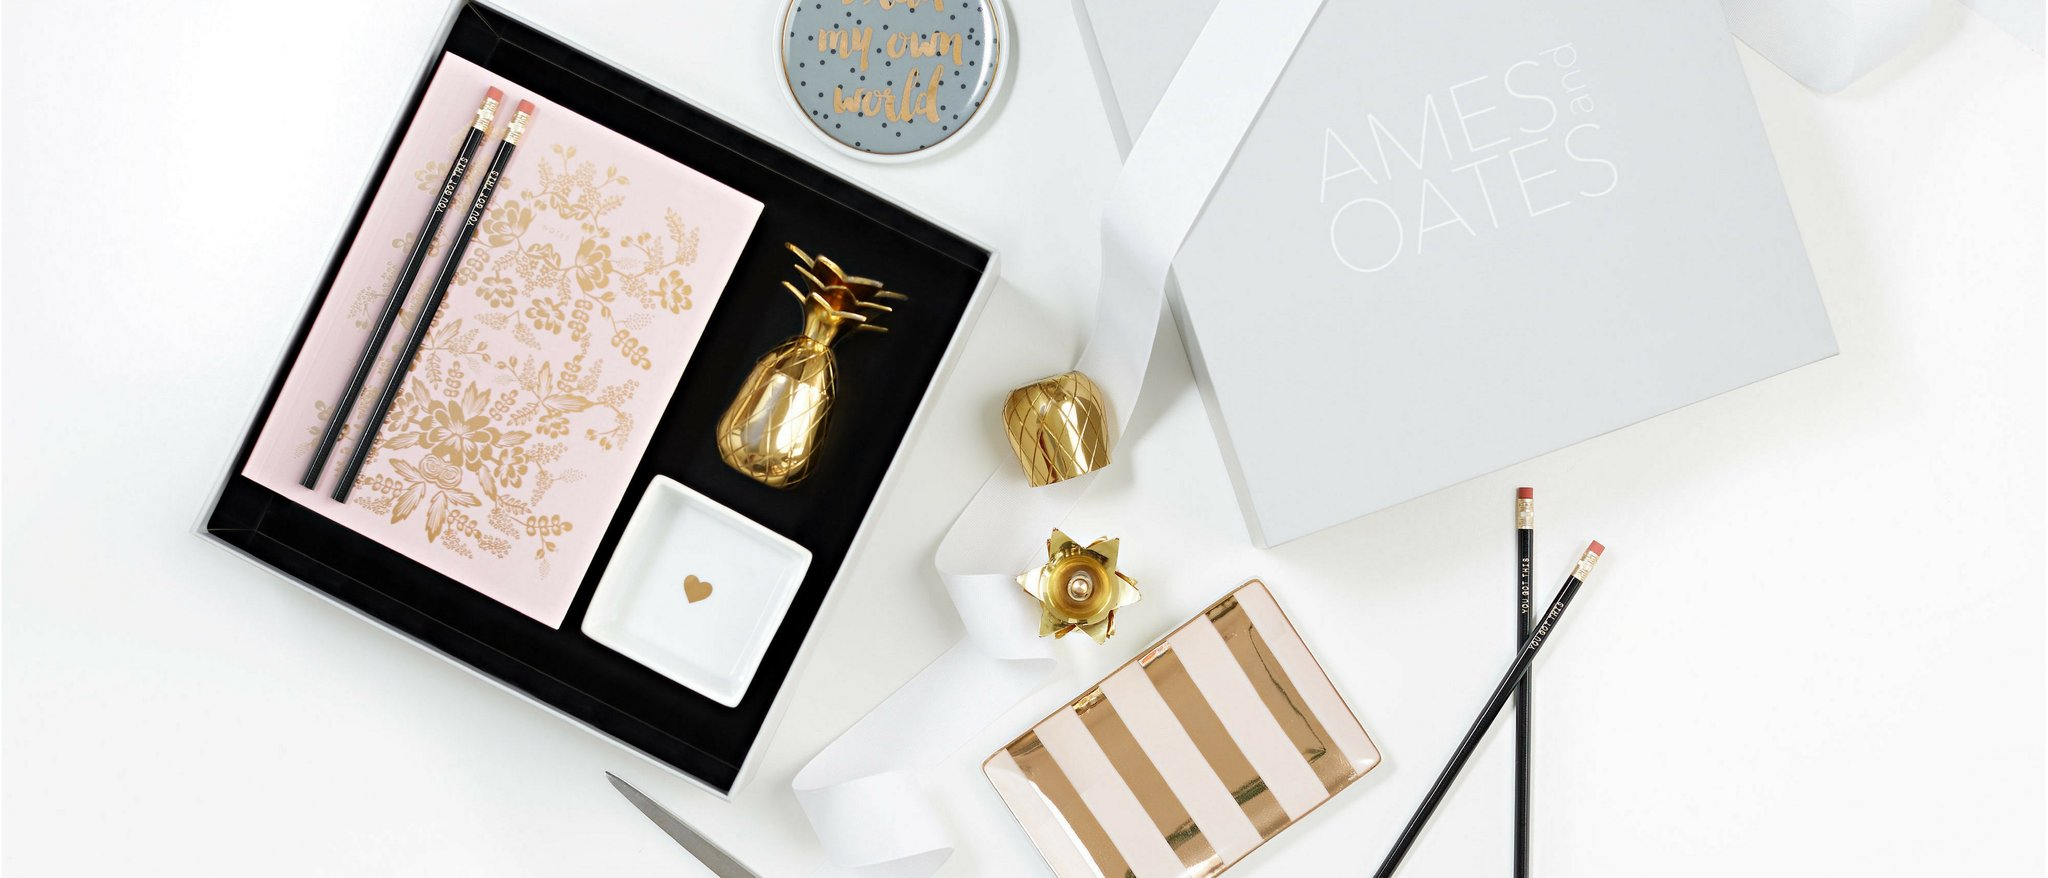 Curated gifts and gift boxes. Celebrate People. Celebrate Moments. Celebrate Life.